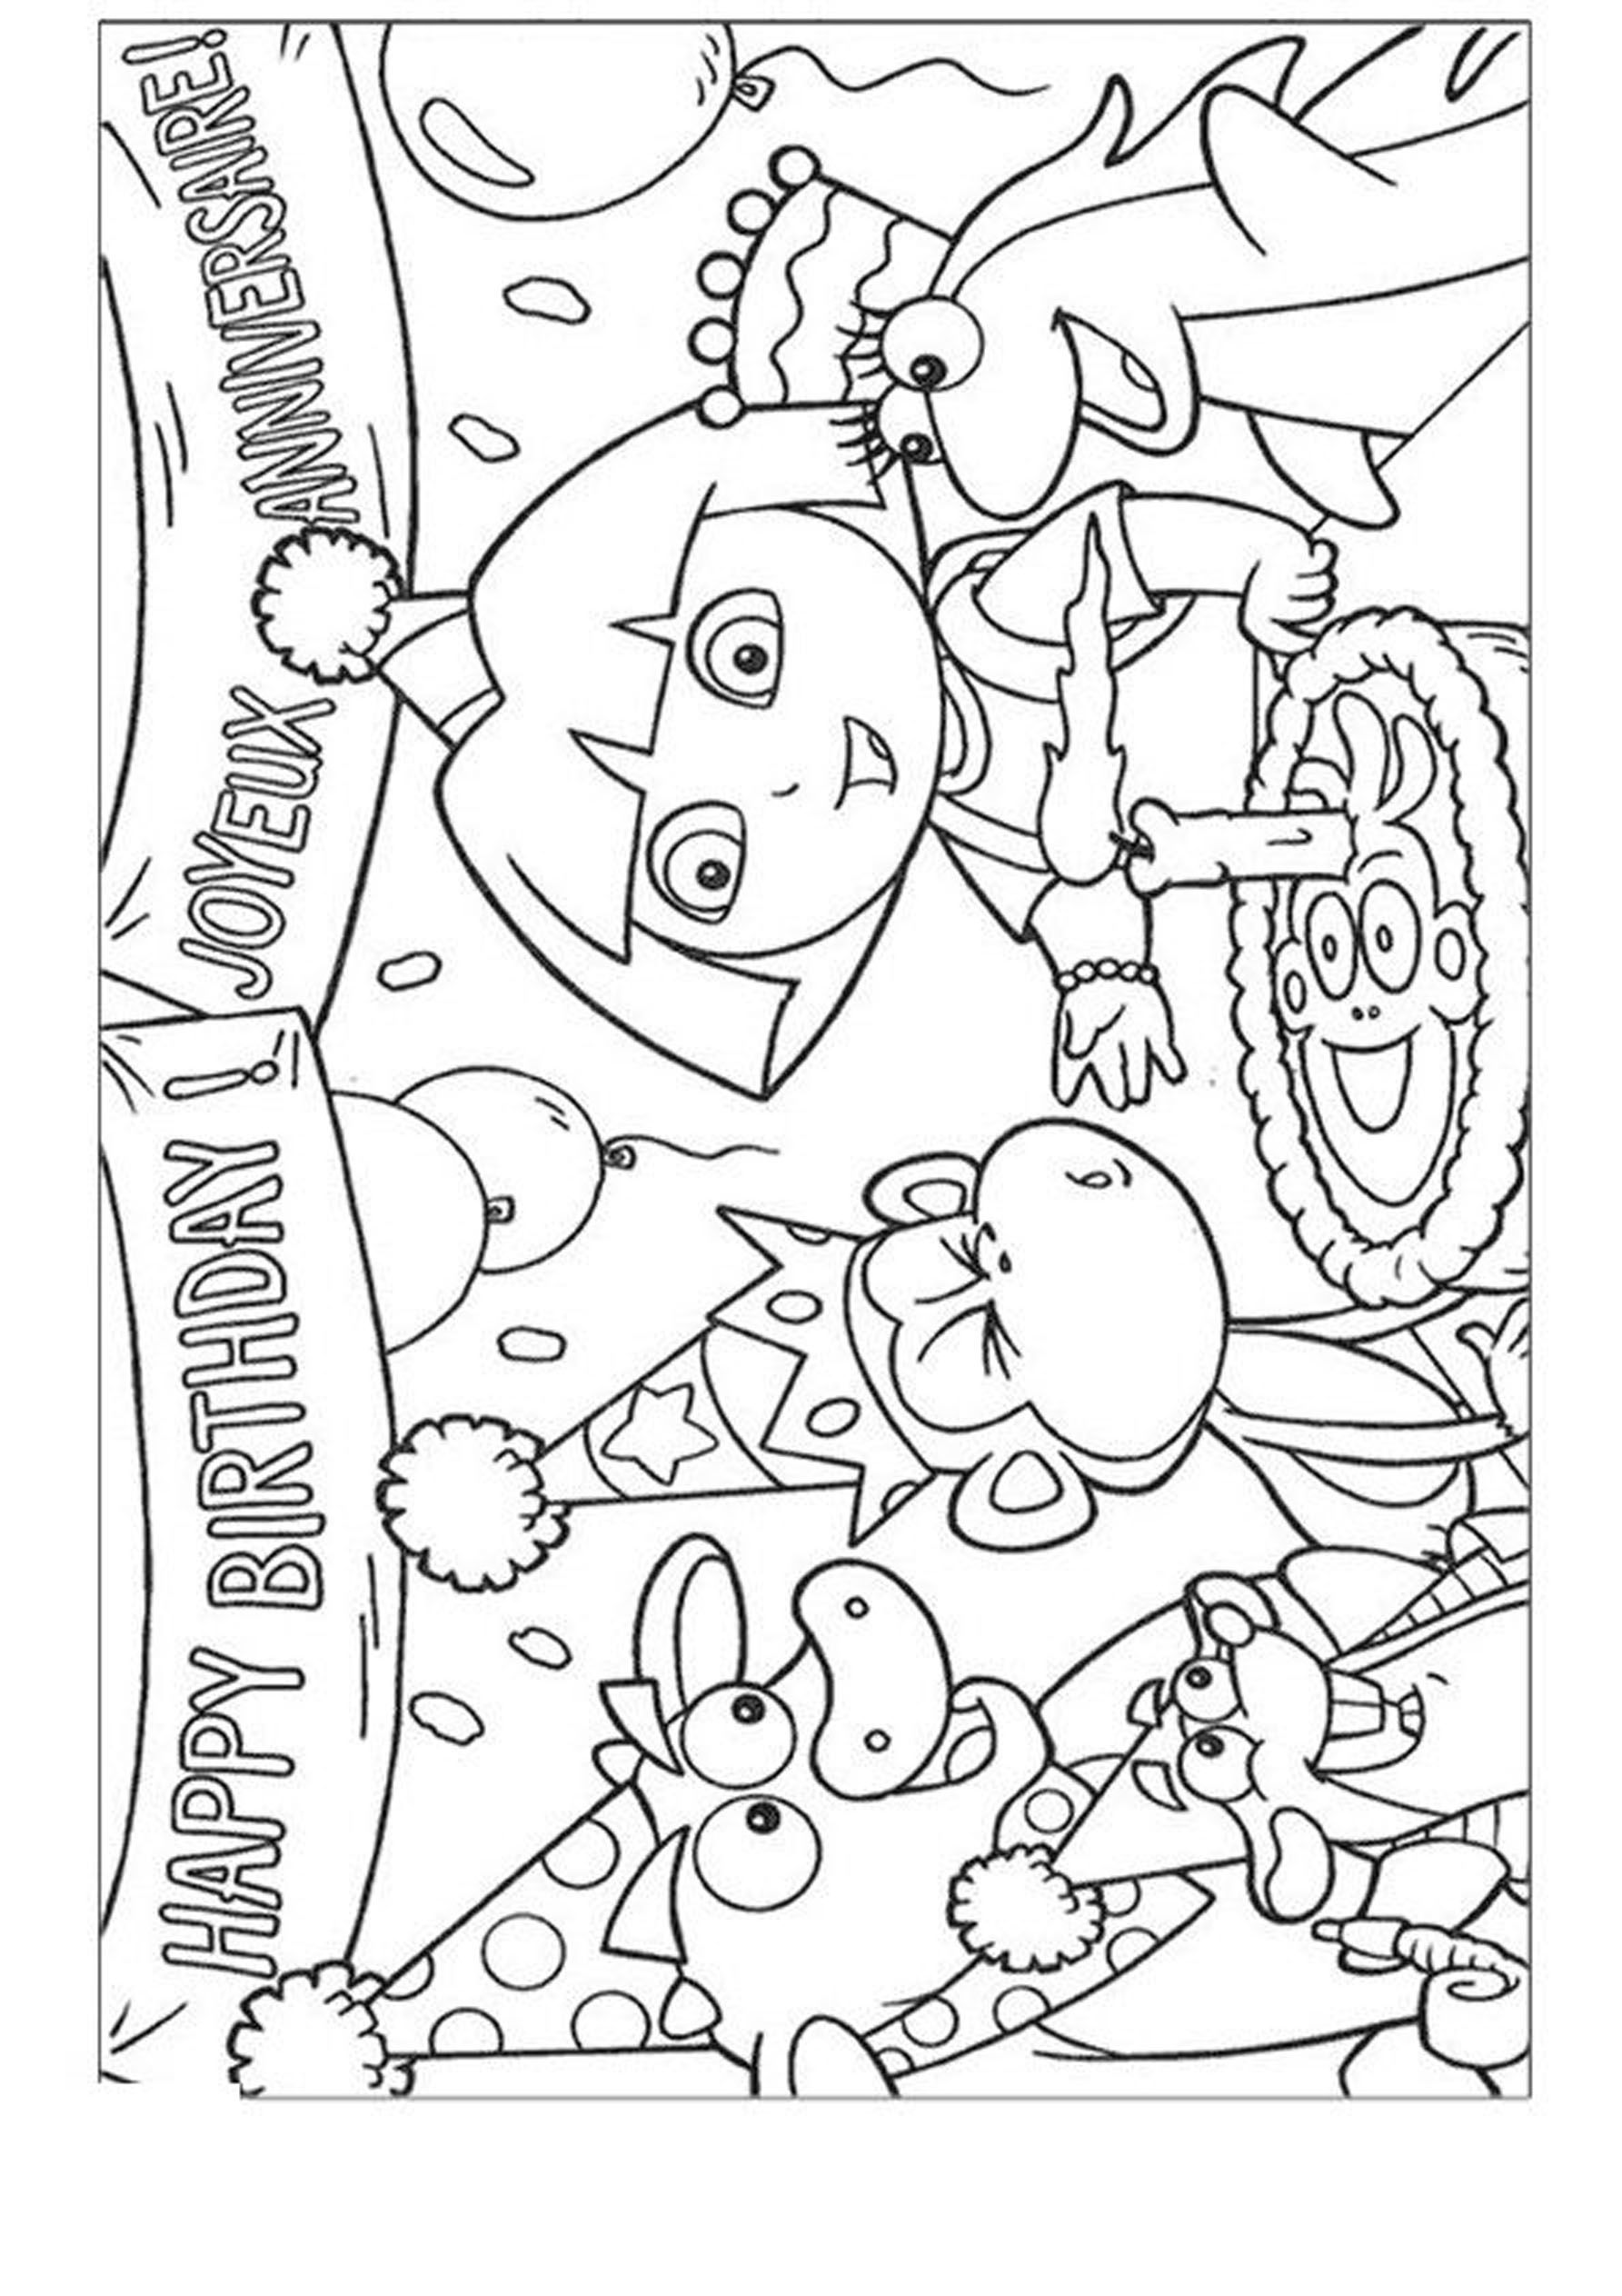 Dora The Explorer Birthday Coloring Pages Coloring Pages Of Happy Birthday Hello Kitty Colouring Pages Birthday Coloring Pages Happy Birthday Coloring Pages